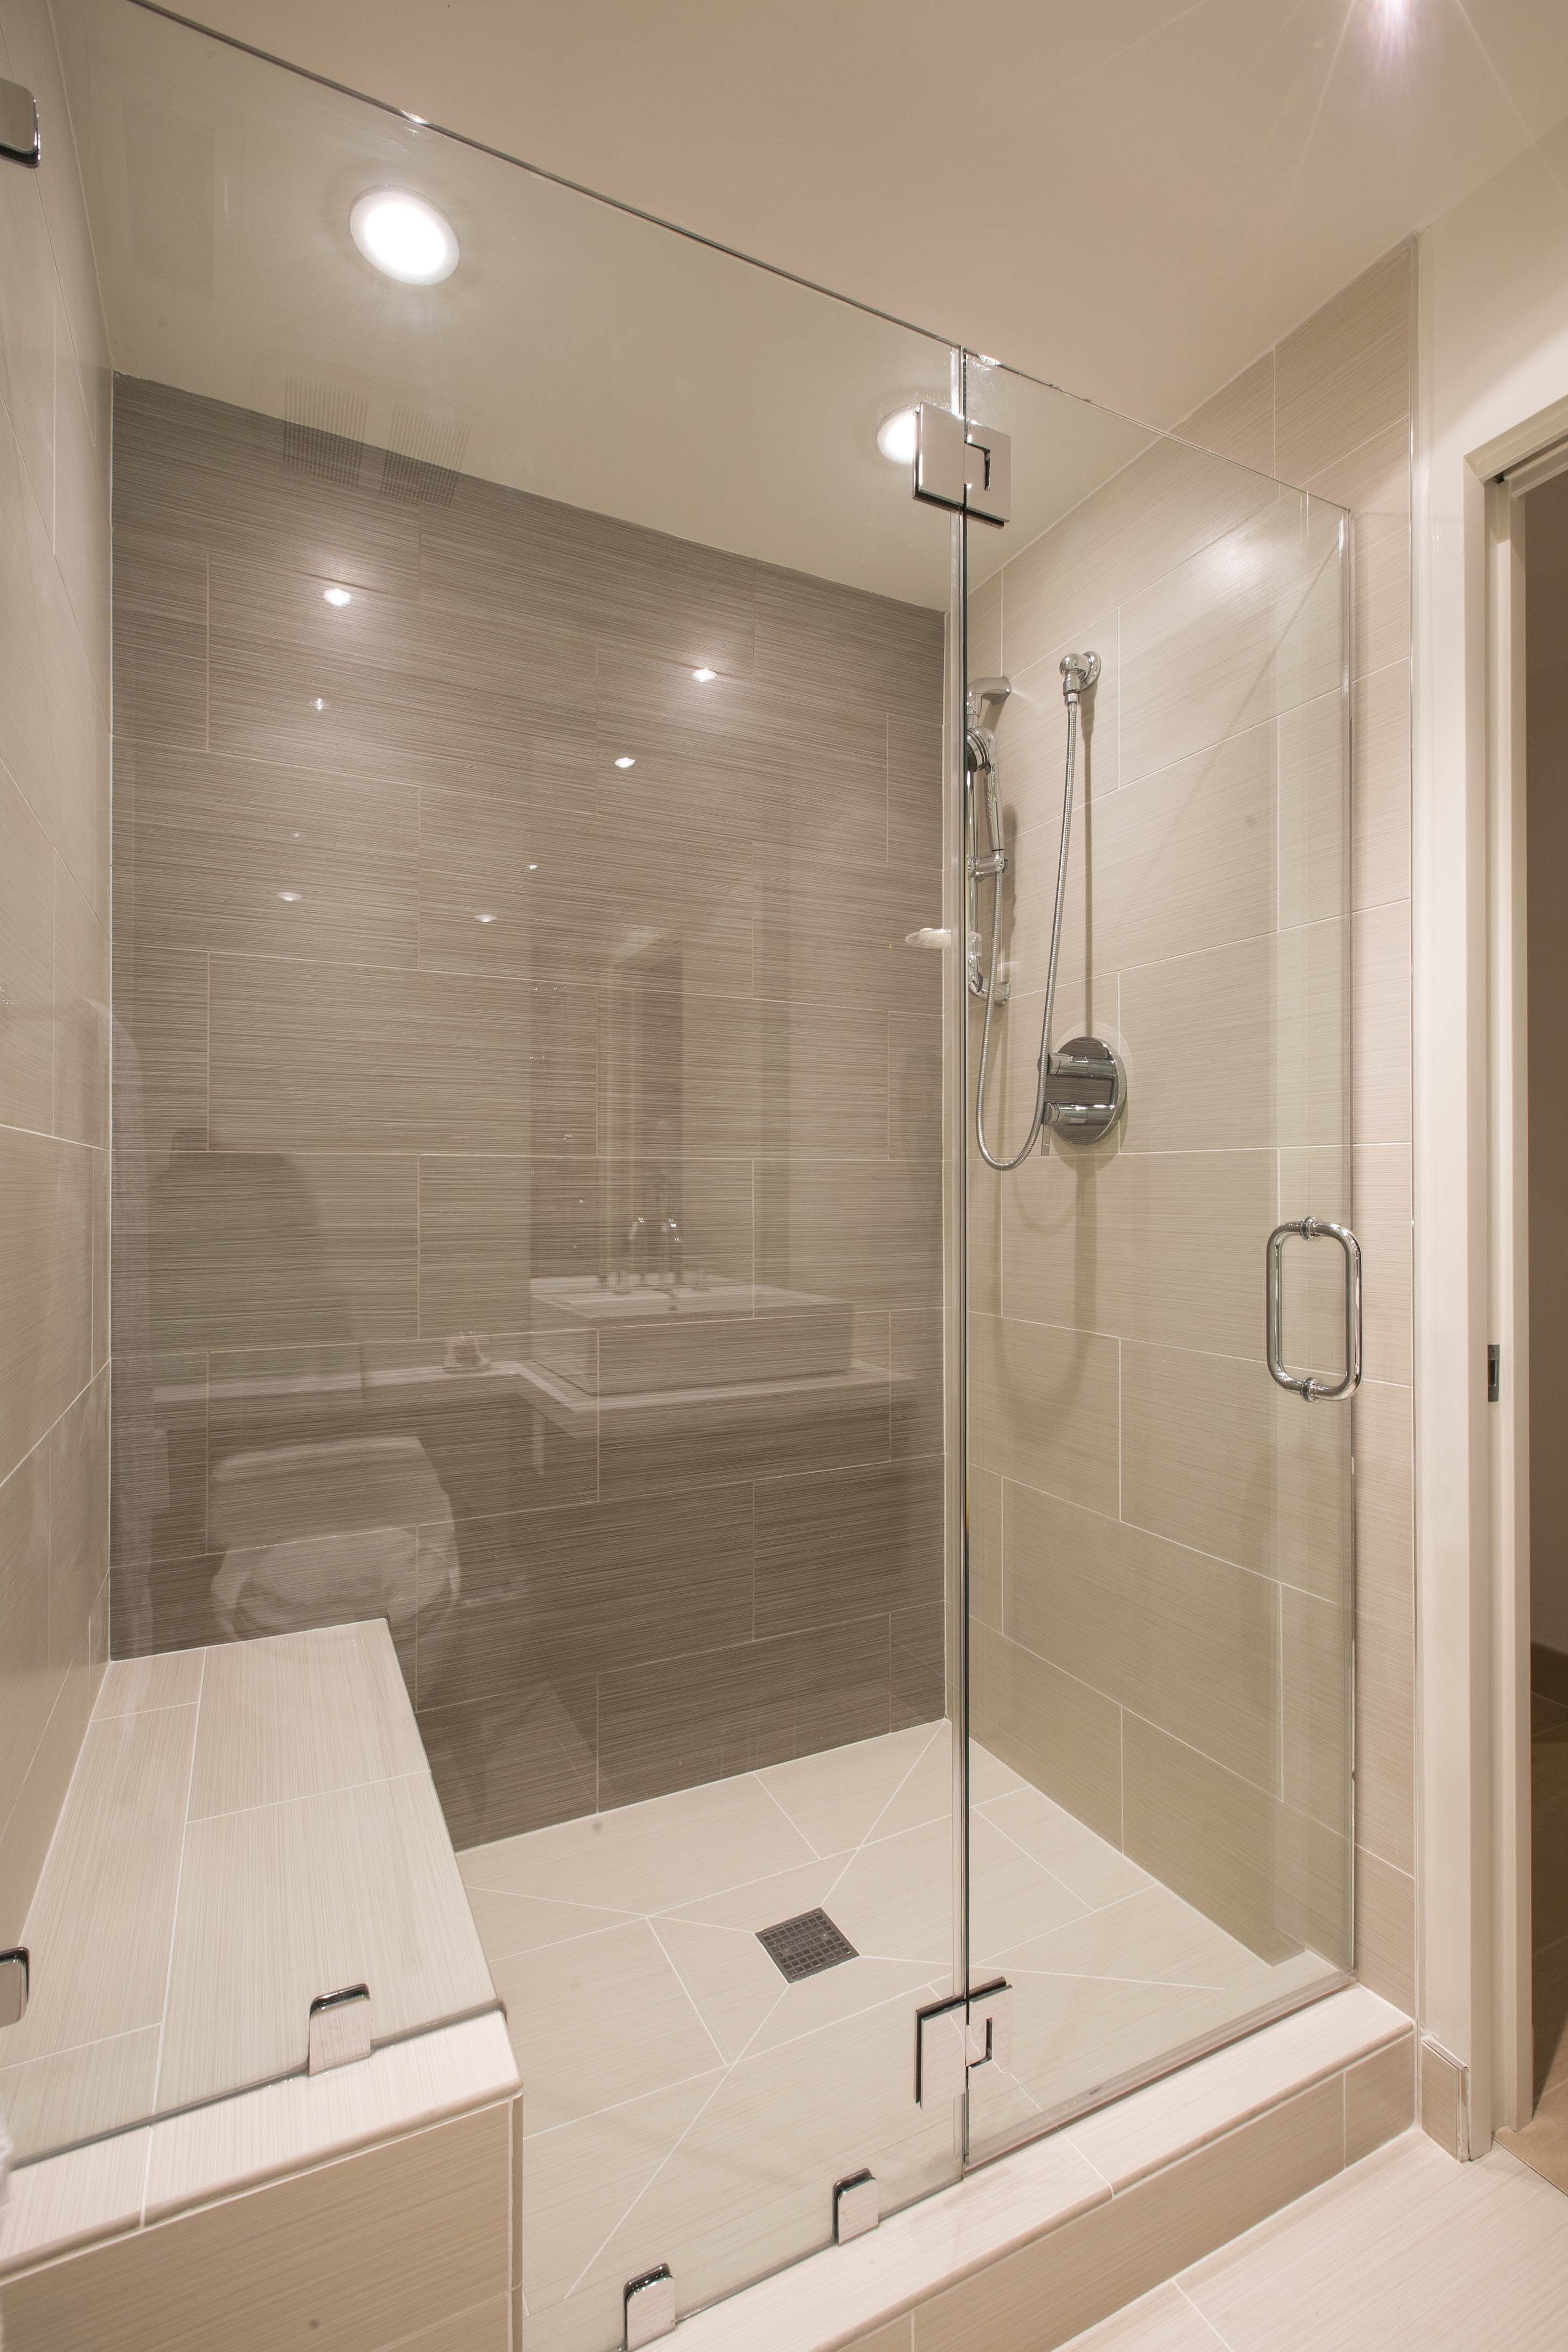 This modern bathroom has  large glass enclosed shower in tile the stall includes bench and recessed lighting designed by also best images on pinterest